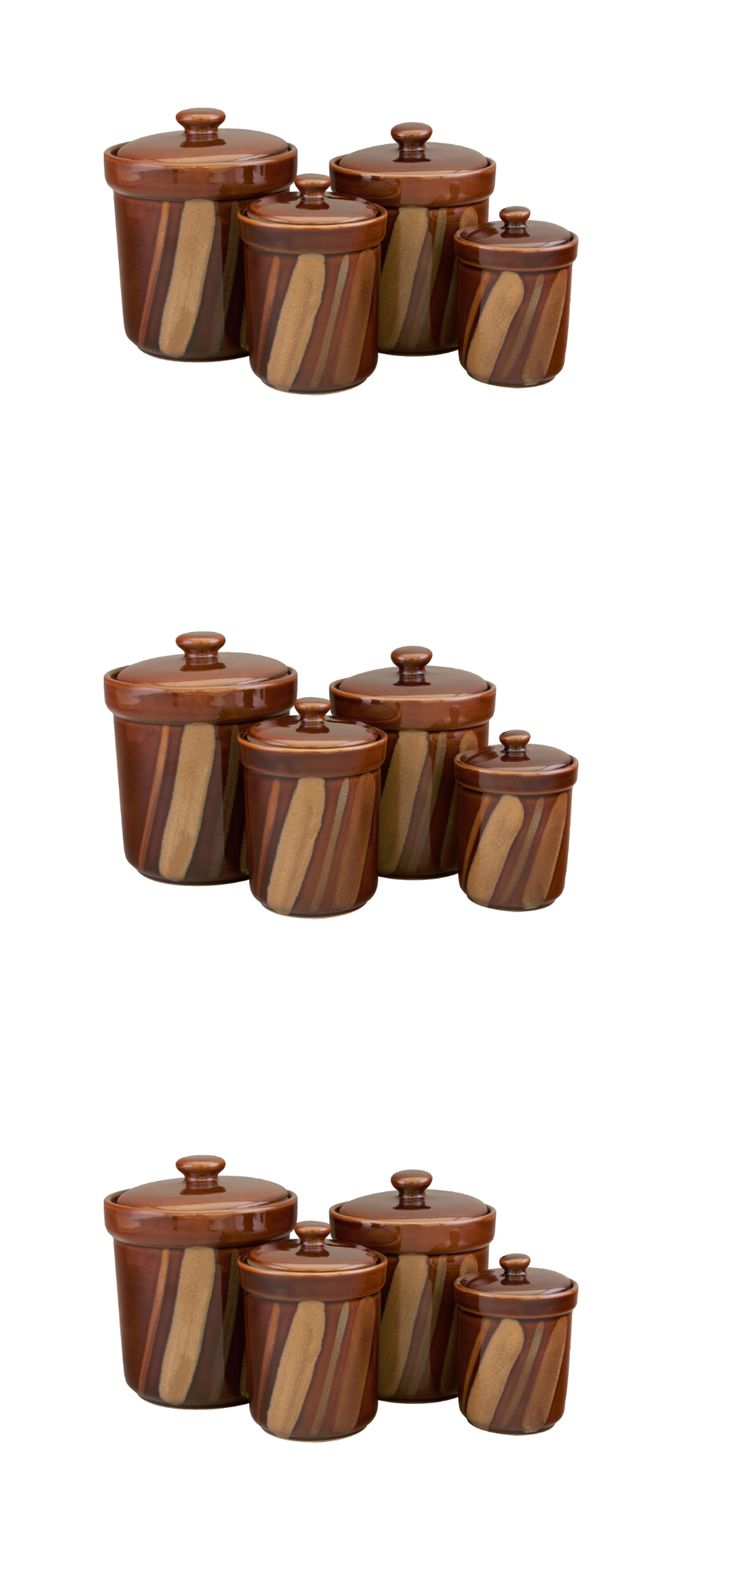 Tuscan old world drake design medium berry kitchen canisters set of 3 - Canisters And Jars 20654 Kitchen Canister Sets Food Storage Dry Goods Flour Sugar Coffee Tea